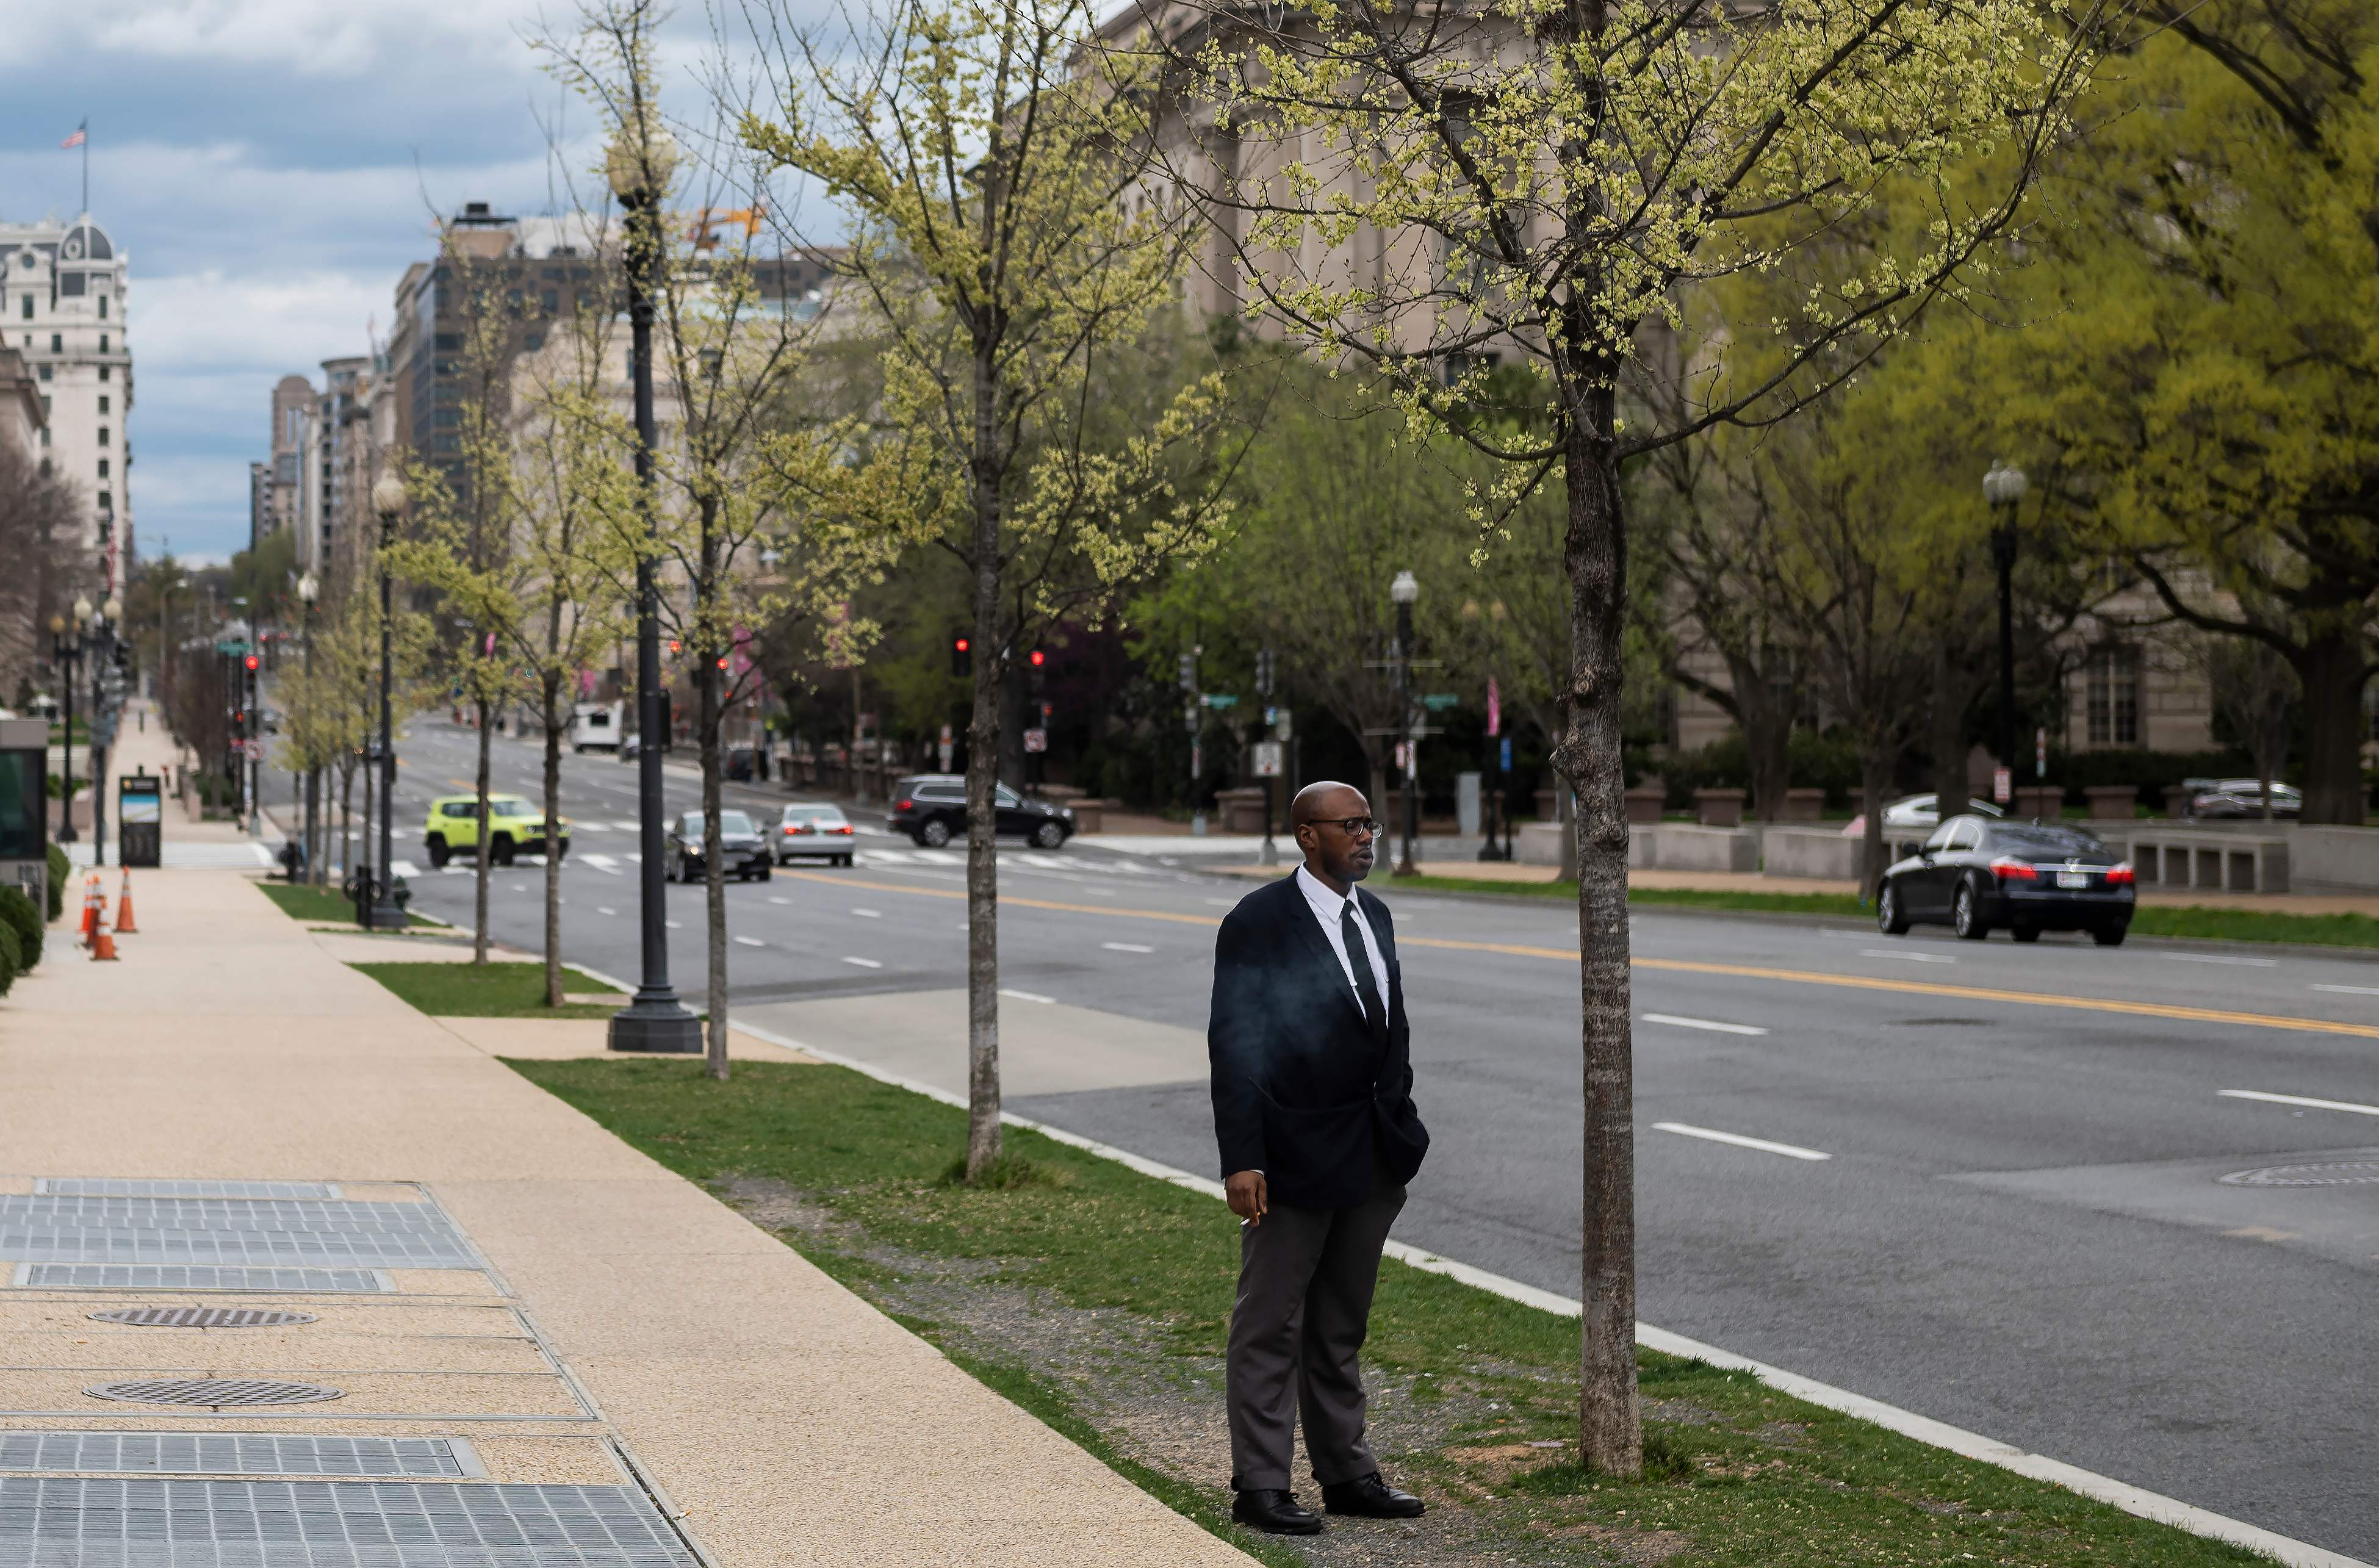 Man outside the African American museum in Washington DC